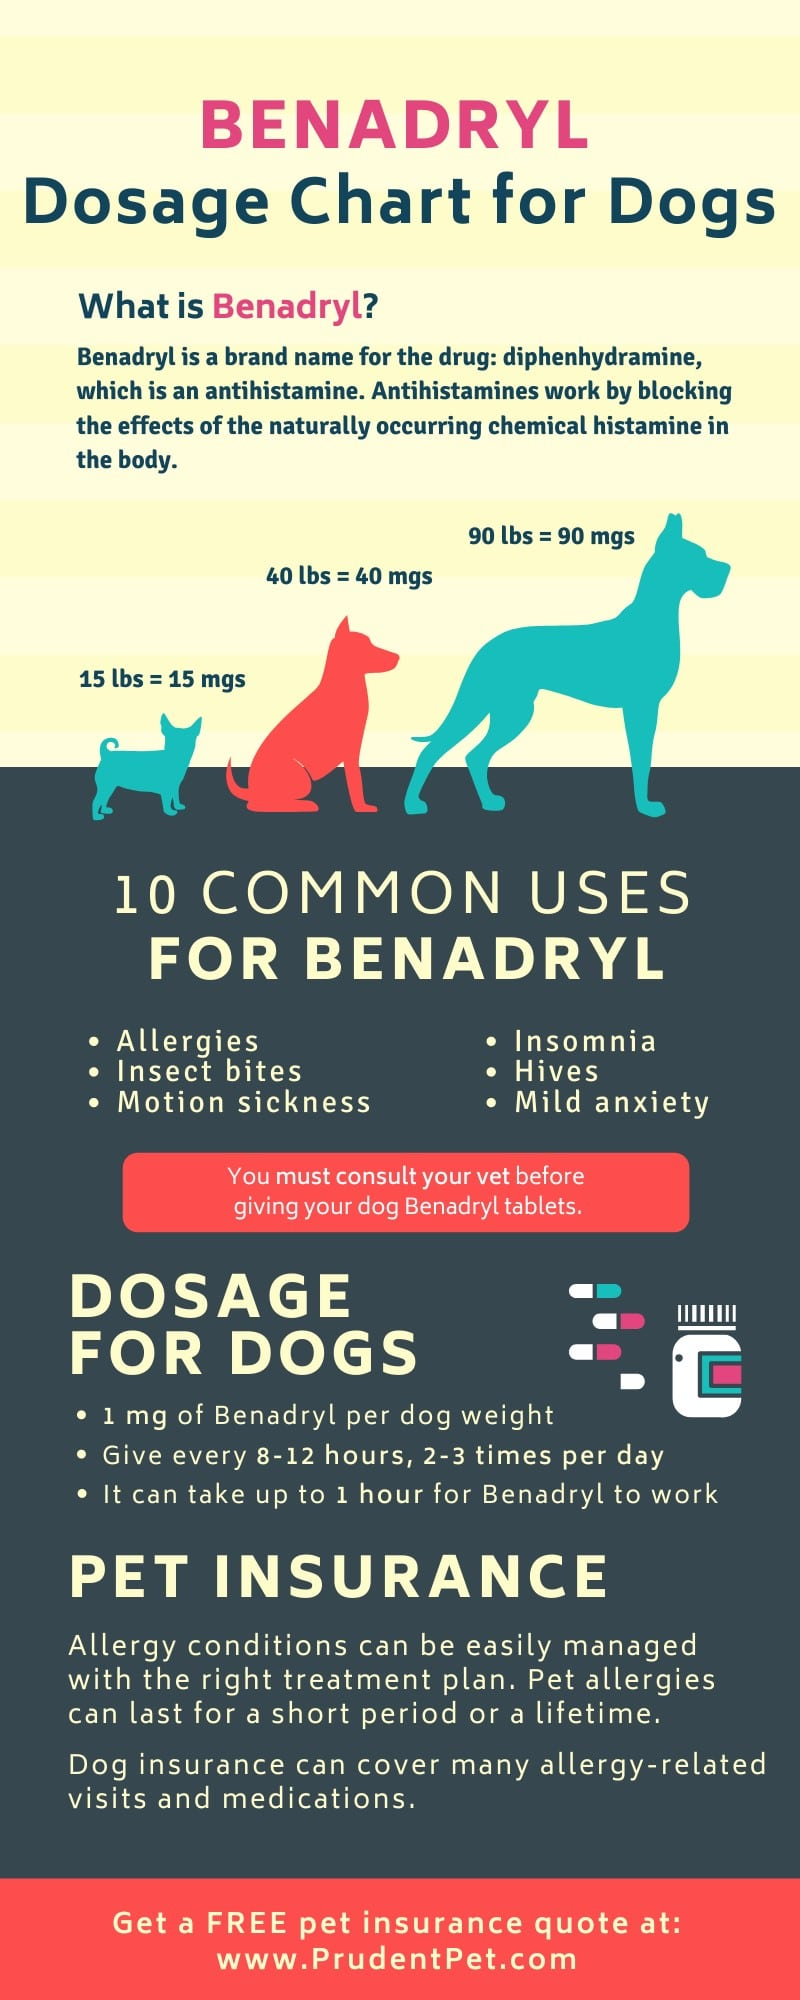 Benadryl infographic from Prudent Pet